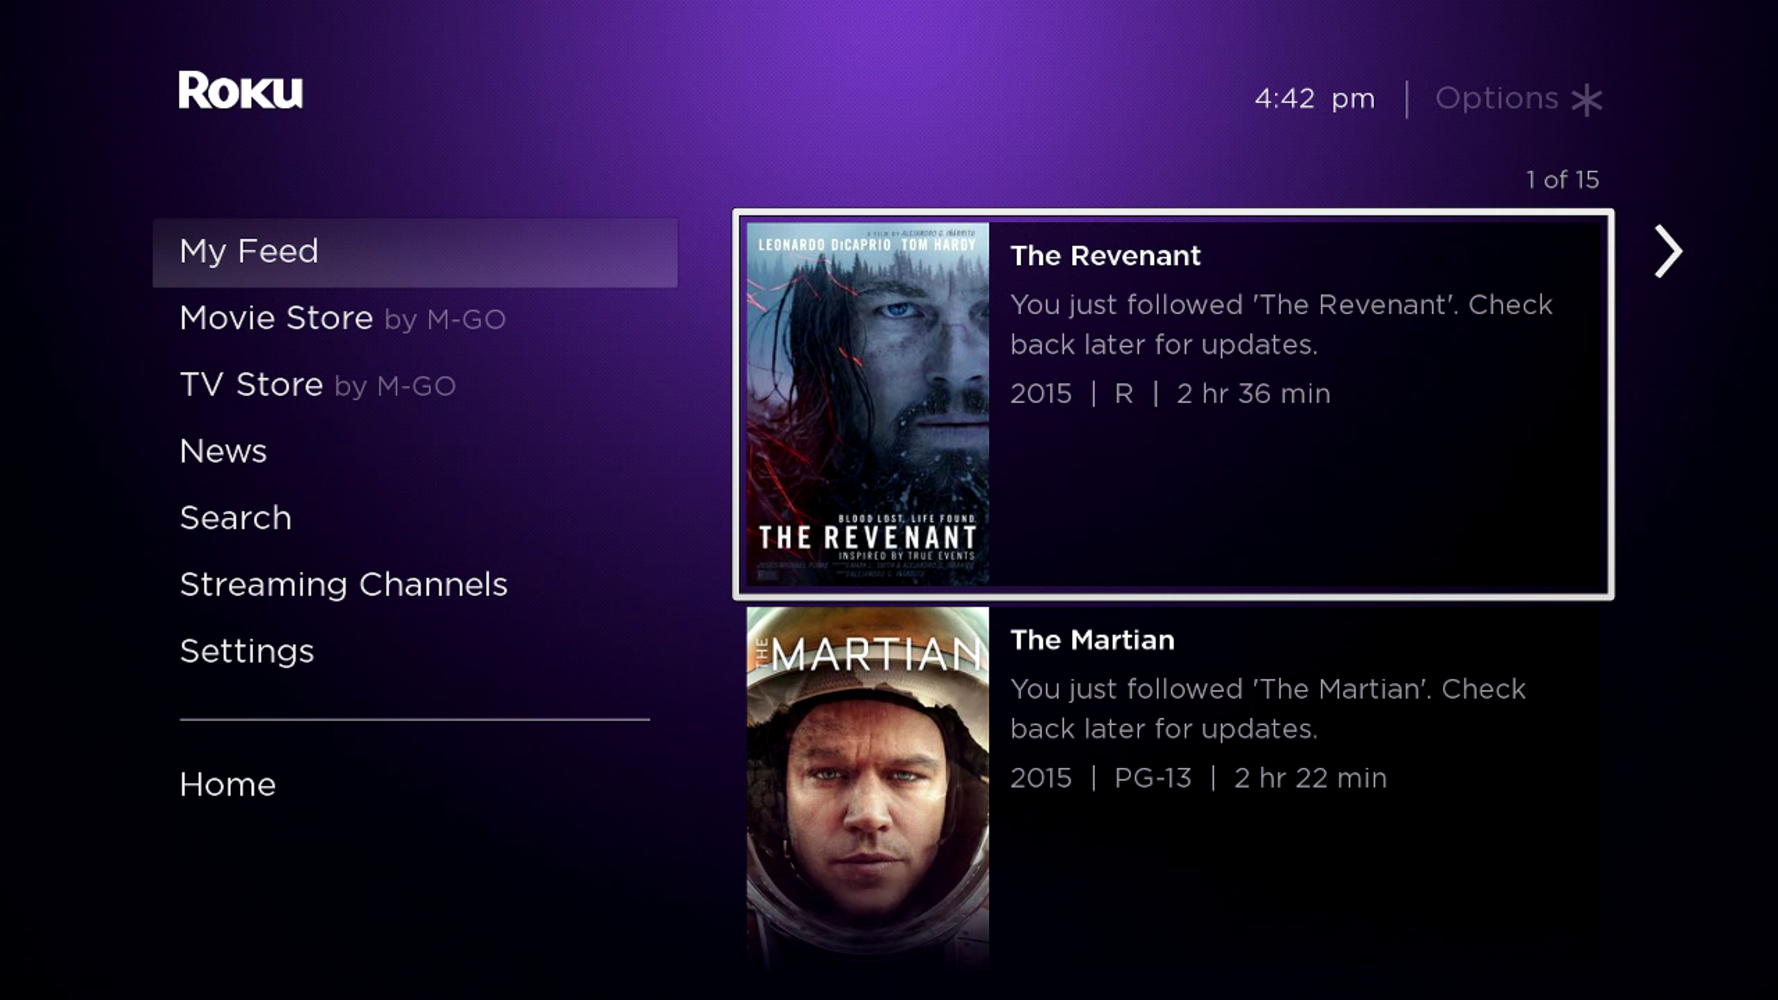 My Feed interface on Roku